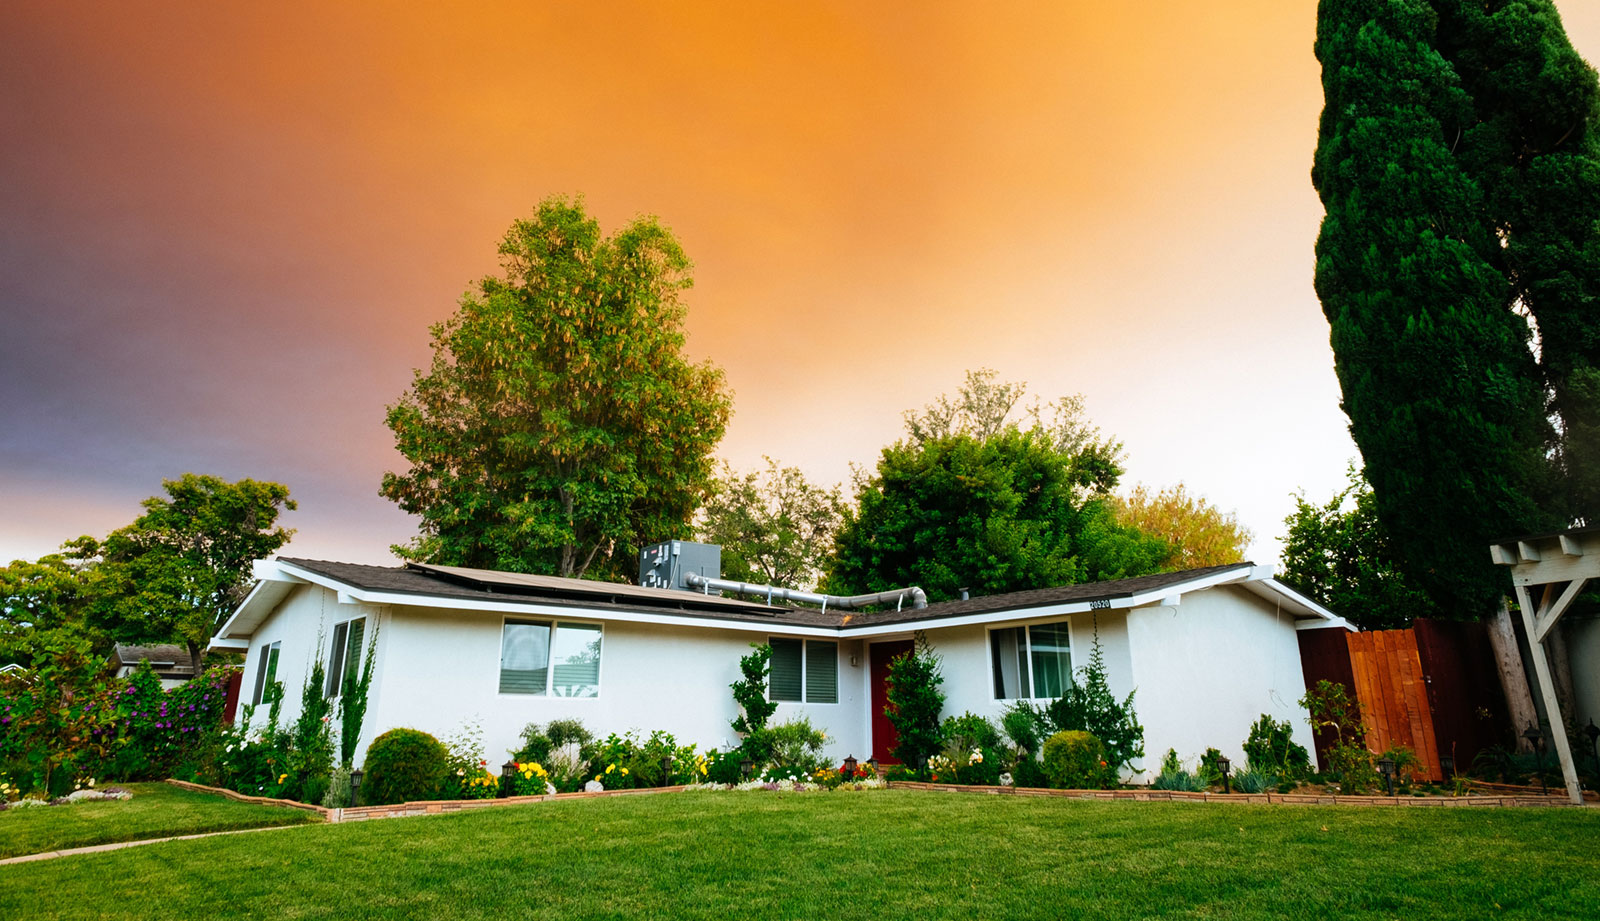 Homeowners Insurance: Protect Your Investment